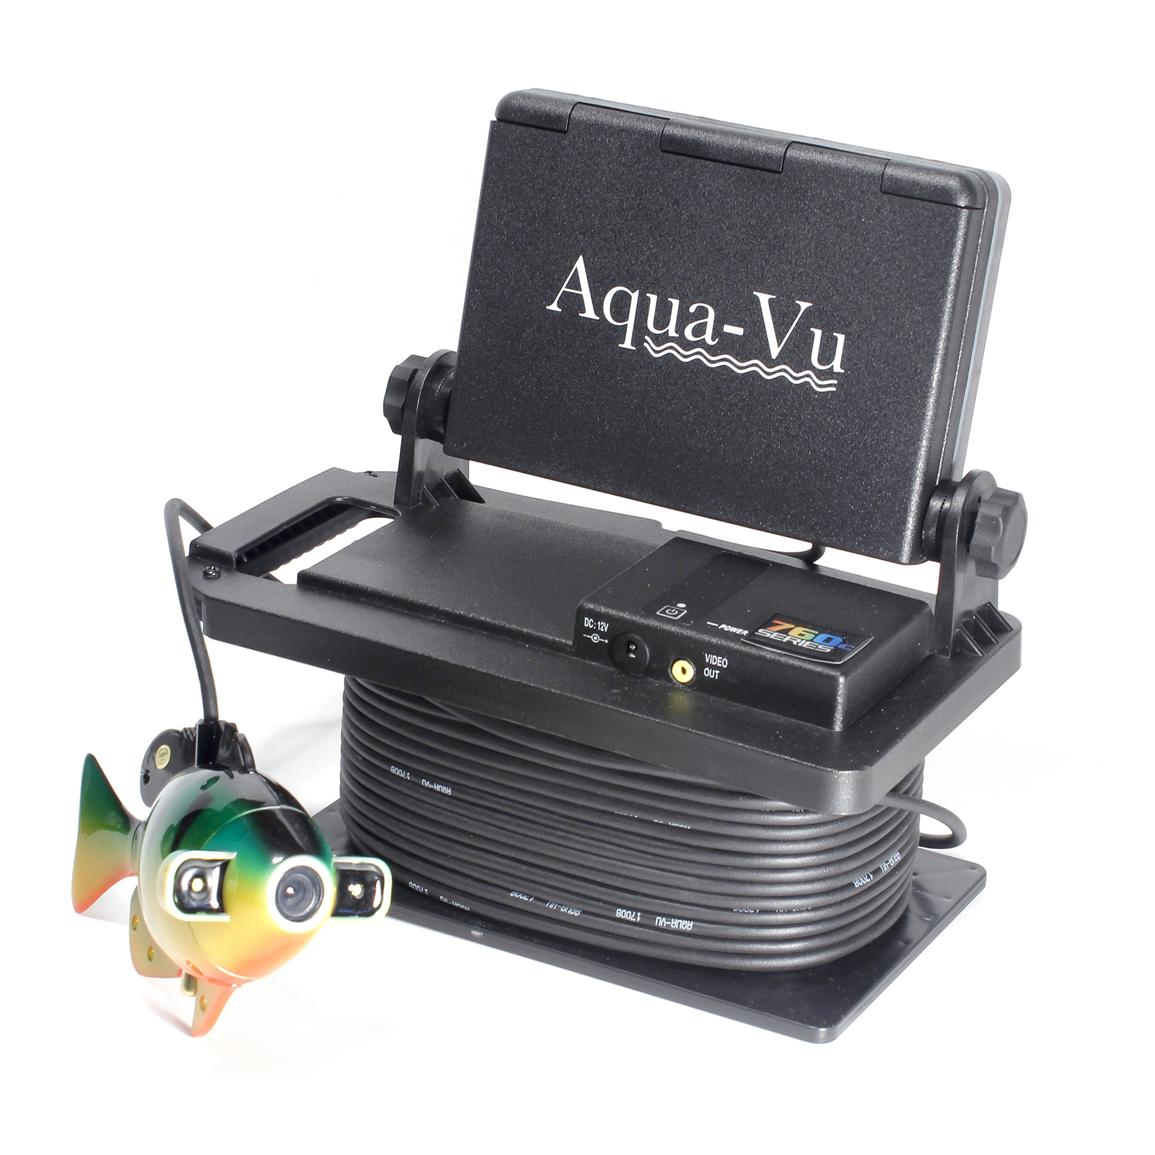 Aqua vu 760c hd color underwater viewing system 580122 for Ice fishing electronics